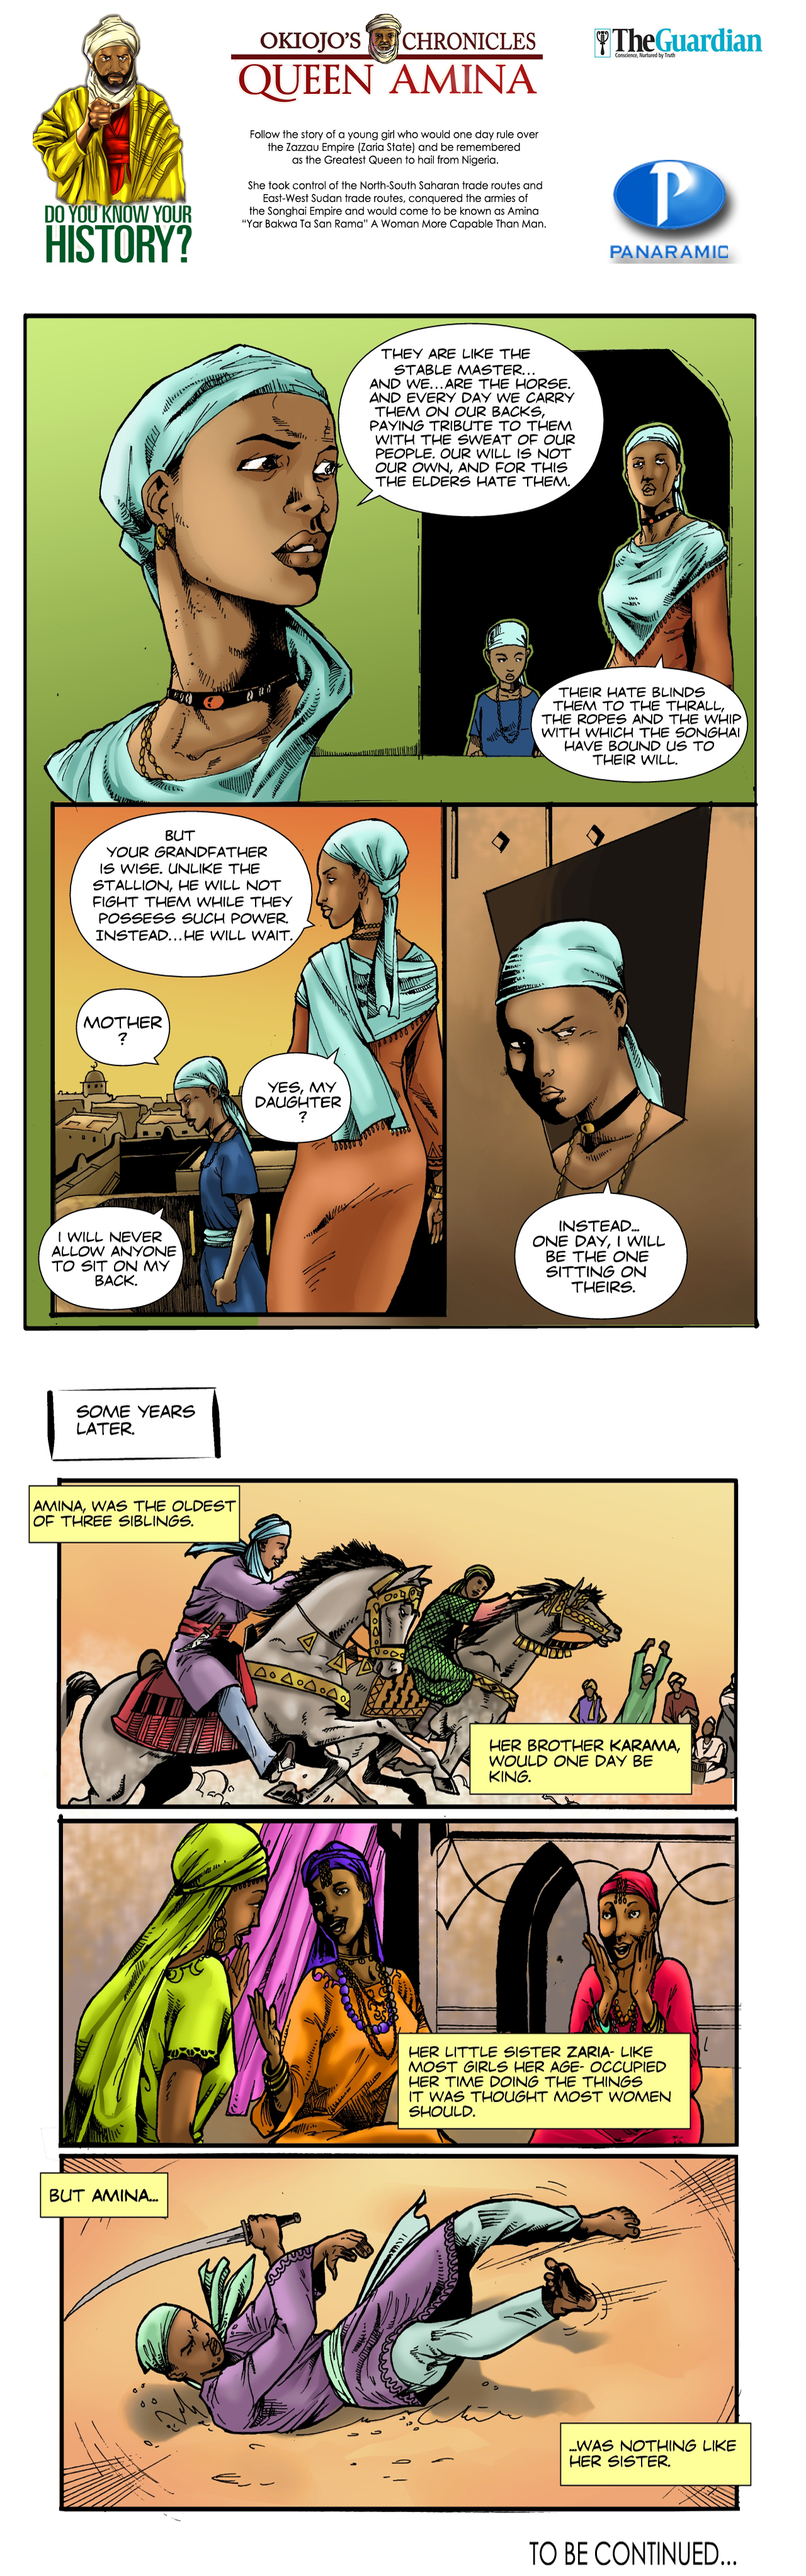 Queen Amina (Part 1) - 6 (1)